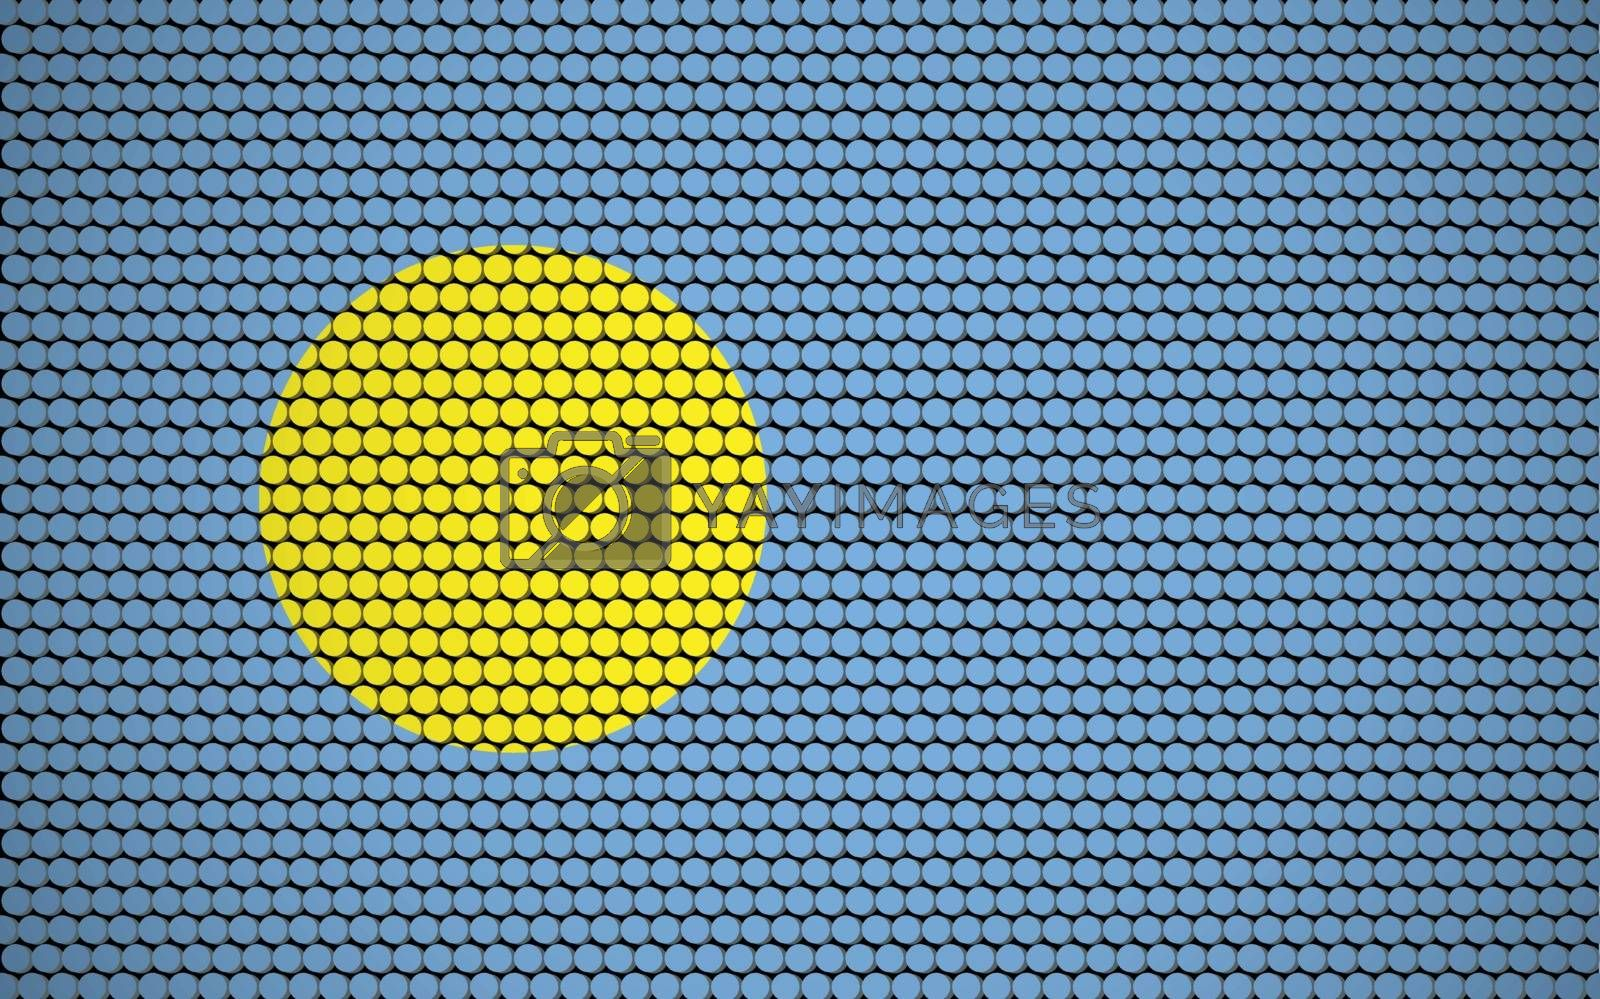 Abstract flag of Palau made of circles. Palauan flag designed with colored dots giving it a modern and futuristic abstract look.